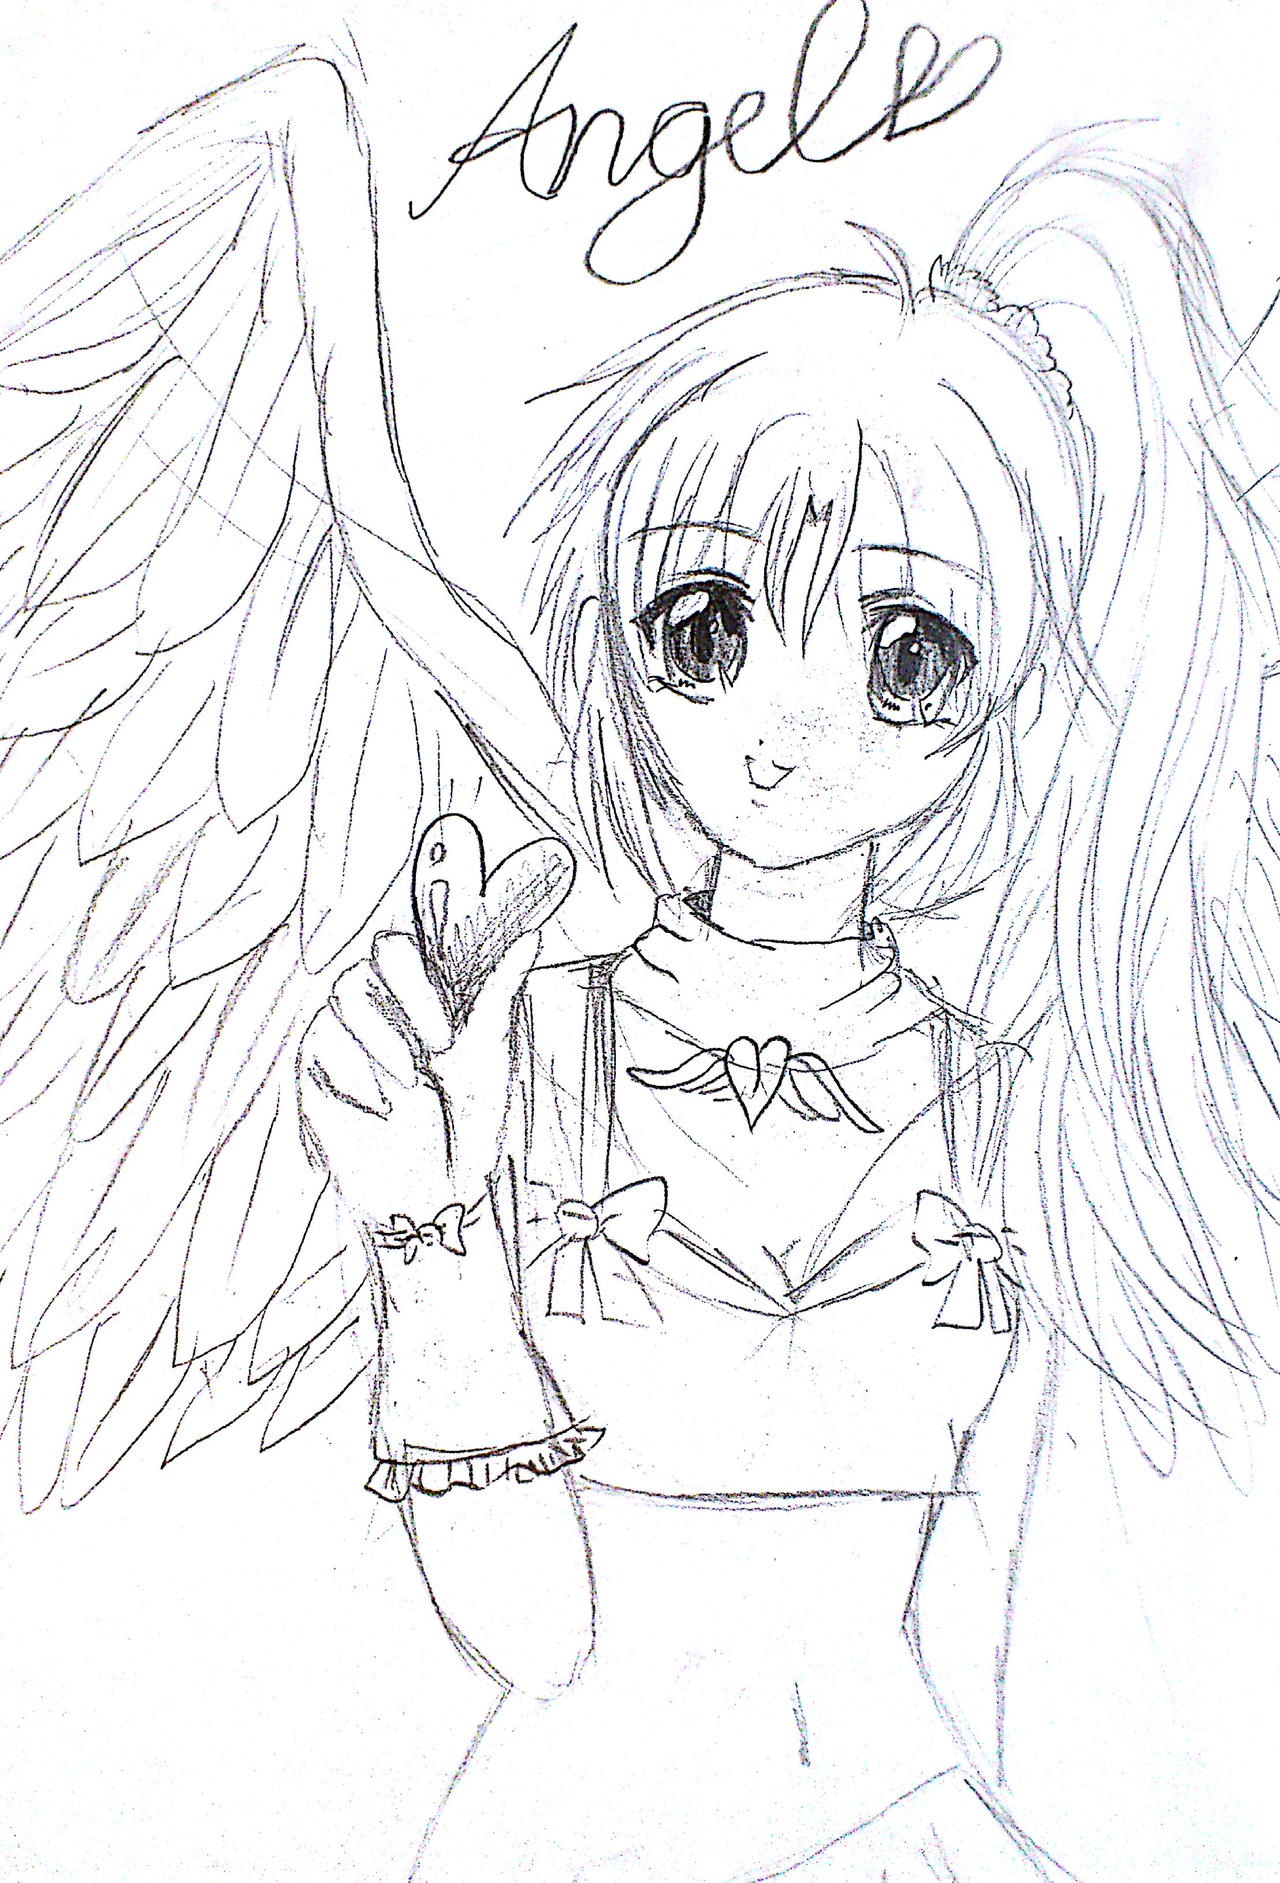 Anime Drawings - Anime Drawings By Irihime 3Chan A